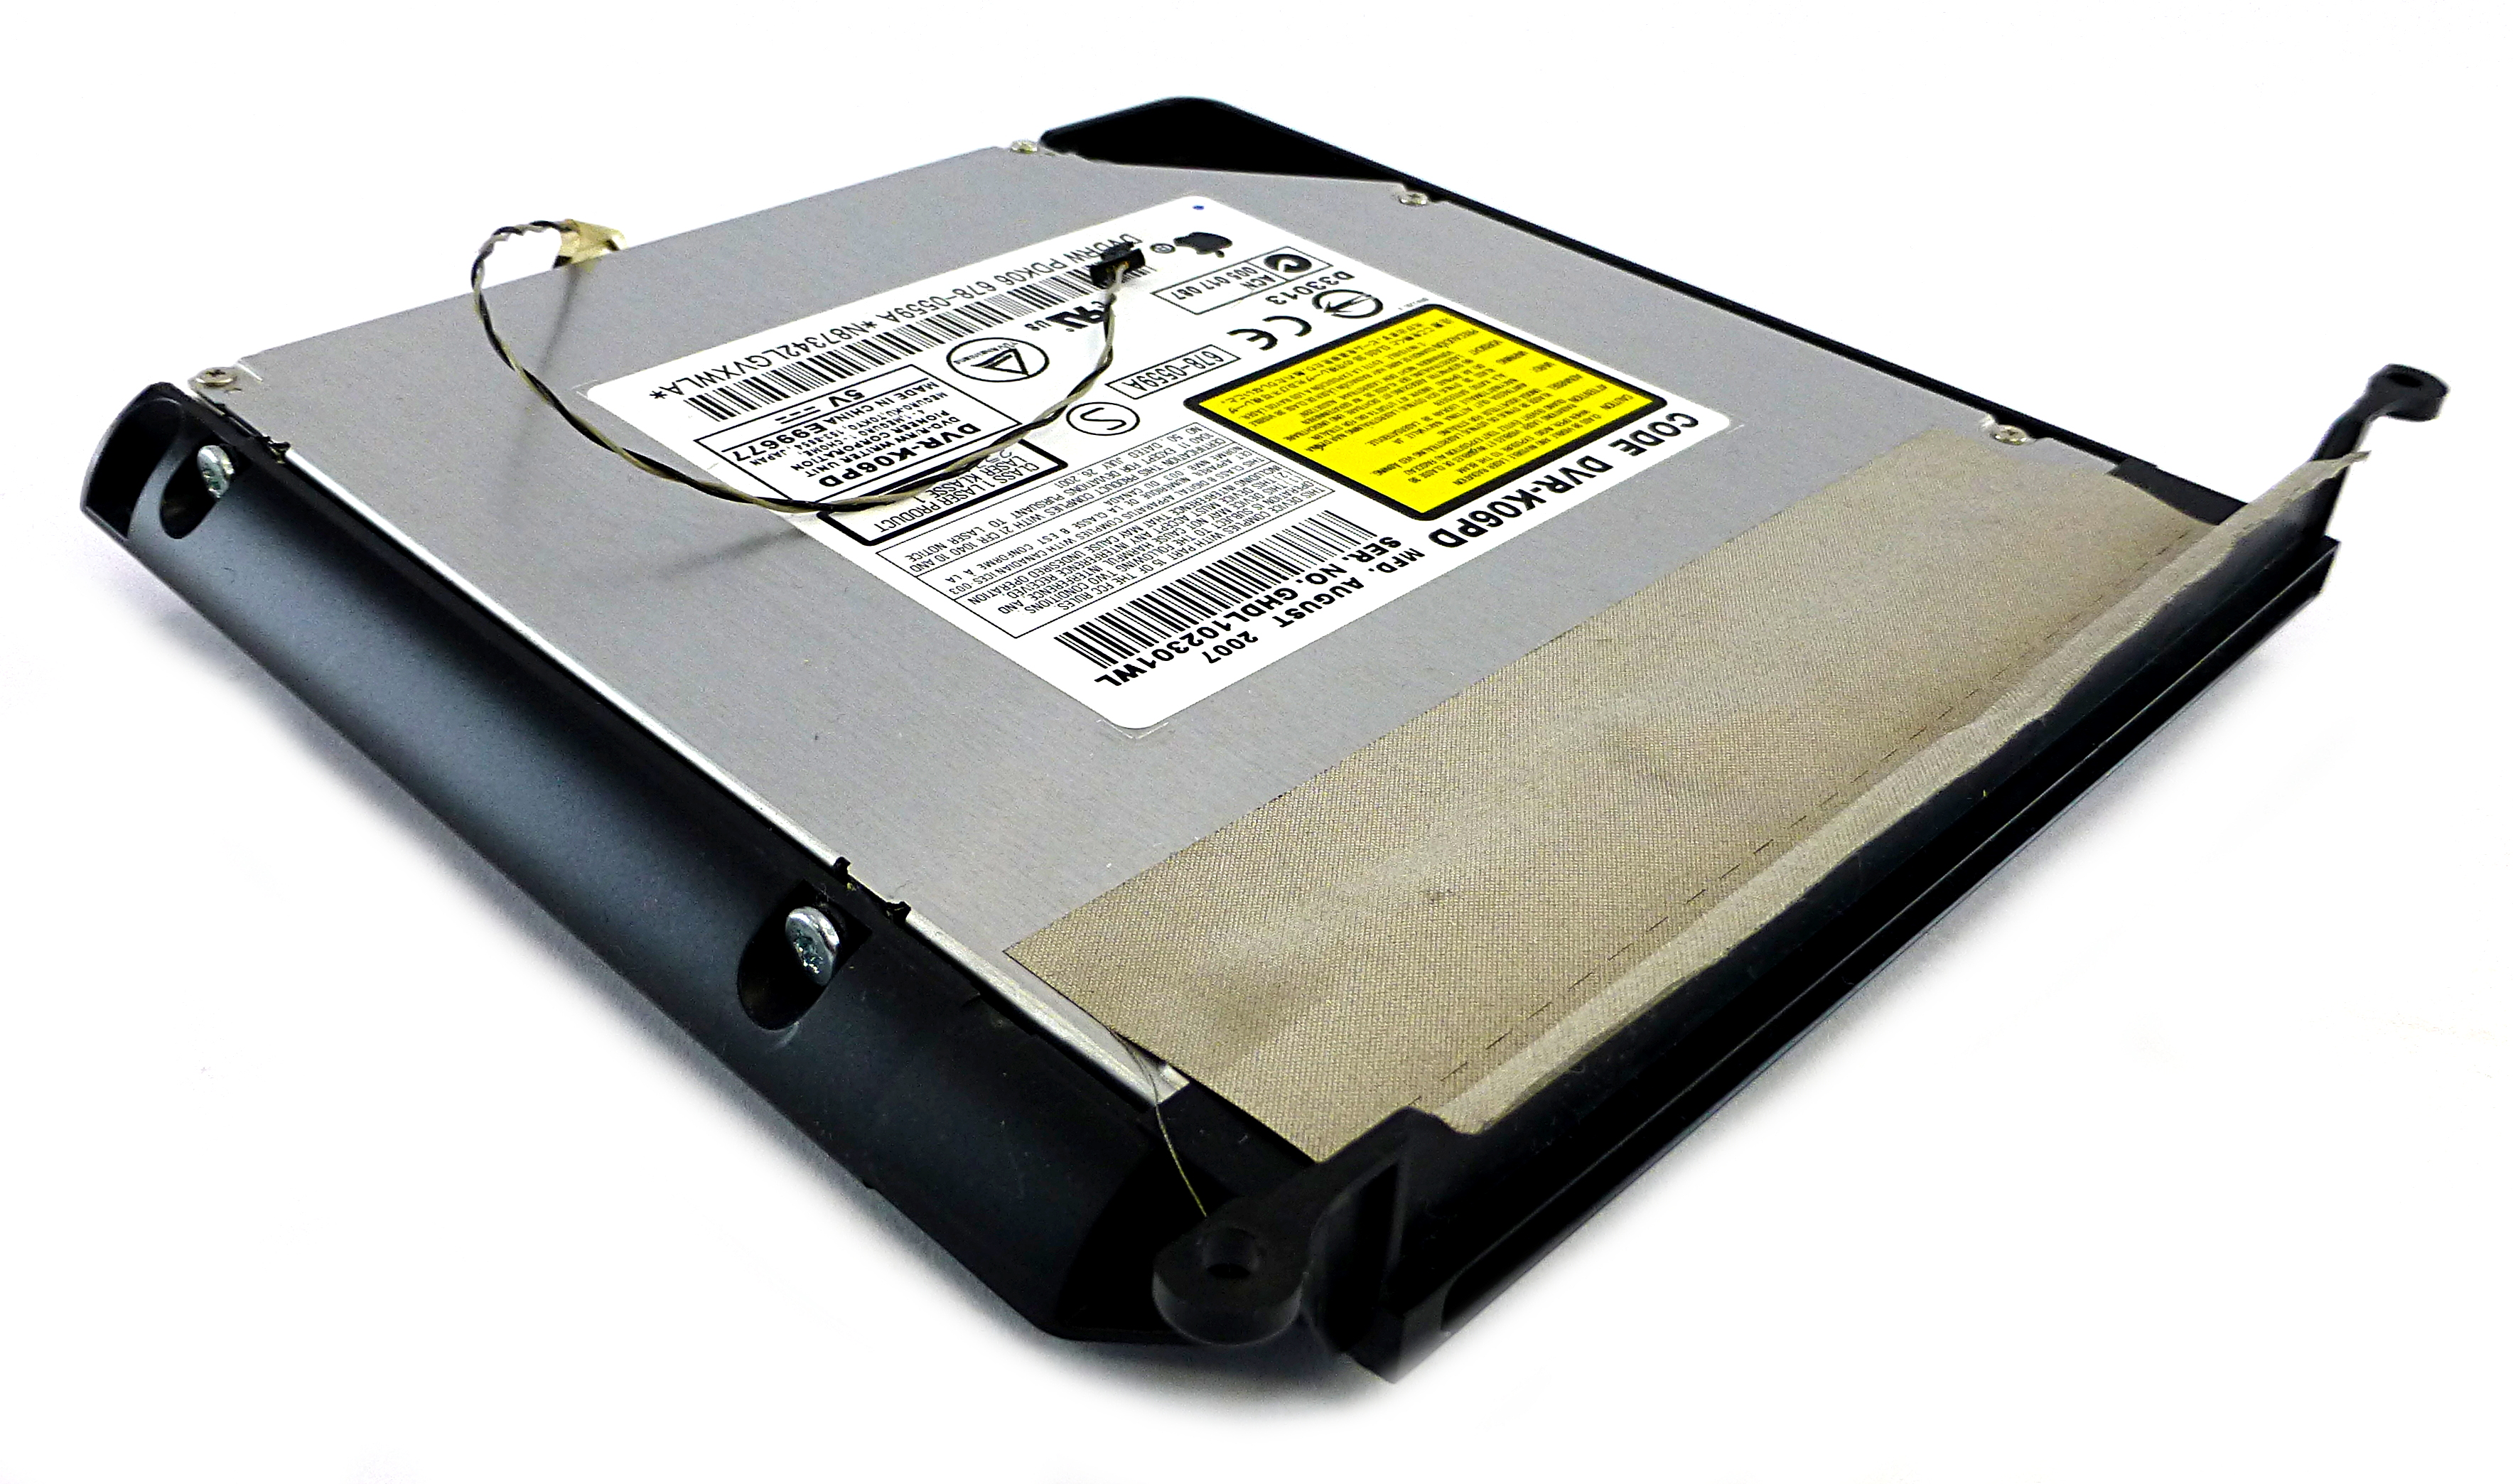 "Apple iMac 20"" C2D Mid-2007 Optical Drive - Pioneer DVR-K06PD 678-0559A A1224"